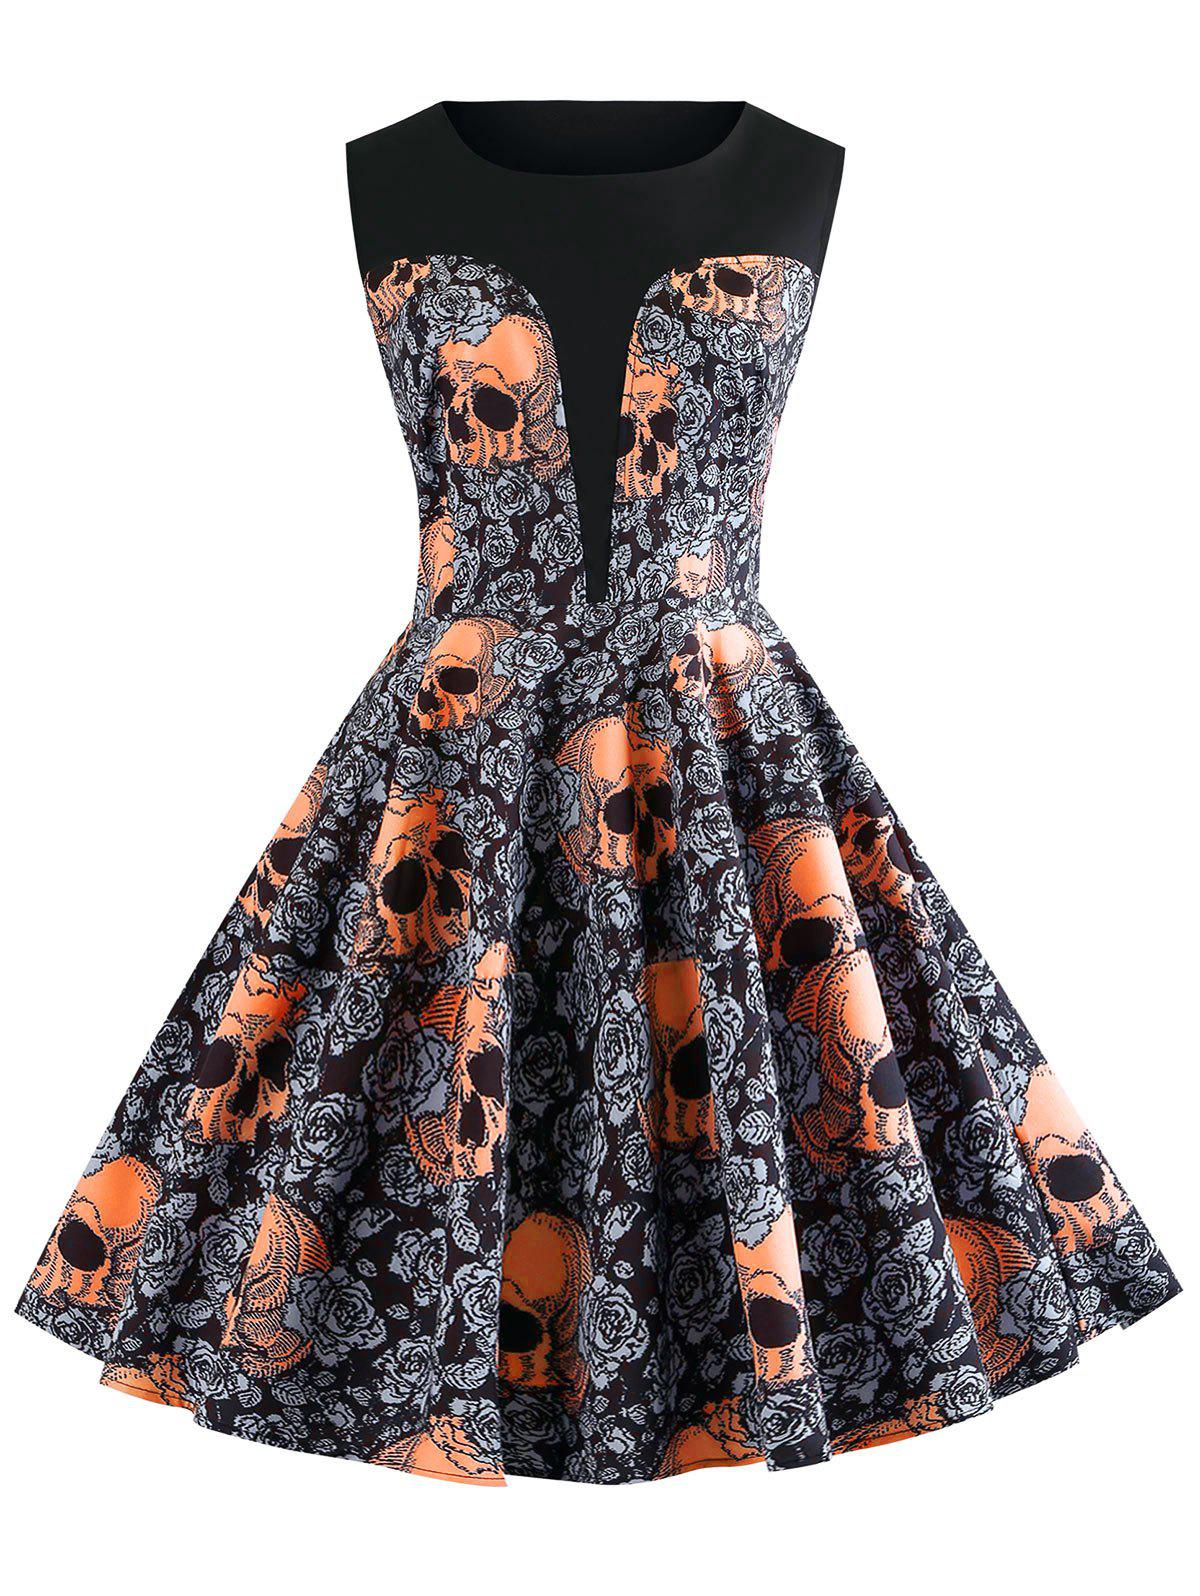 affordable vintage skull and floral print halloween a line dress